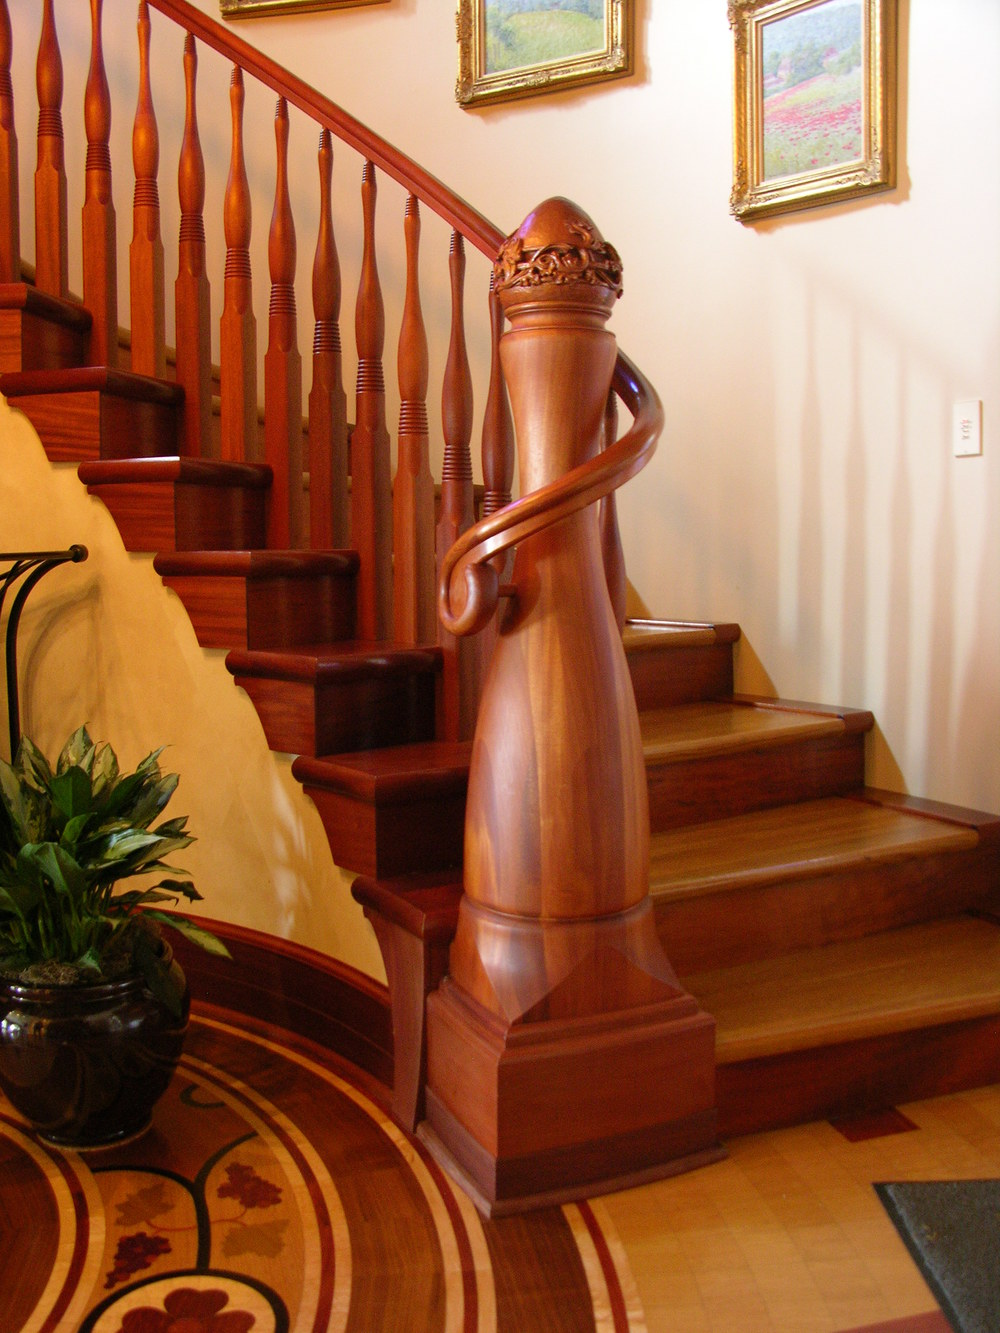 Mahogany newel post and rail by Master Woodworks | Photo courtesy Master Woodworks